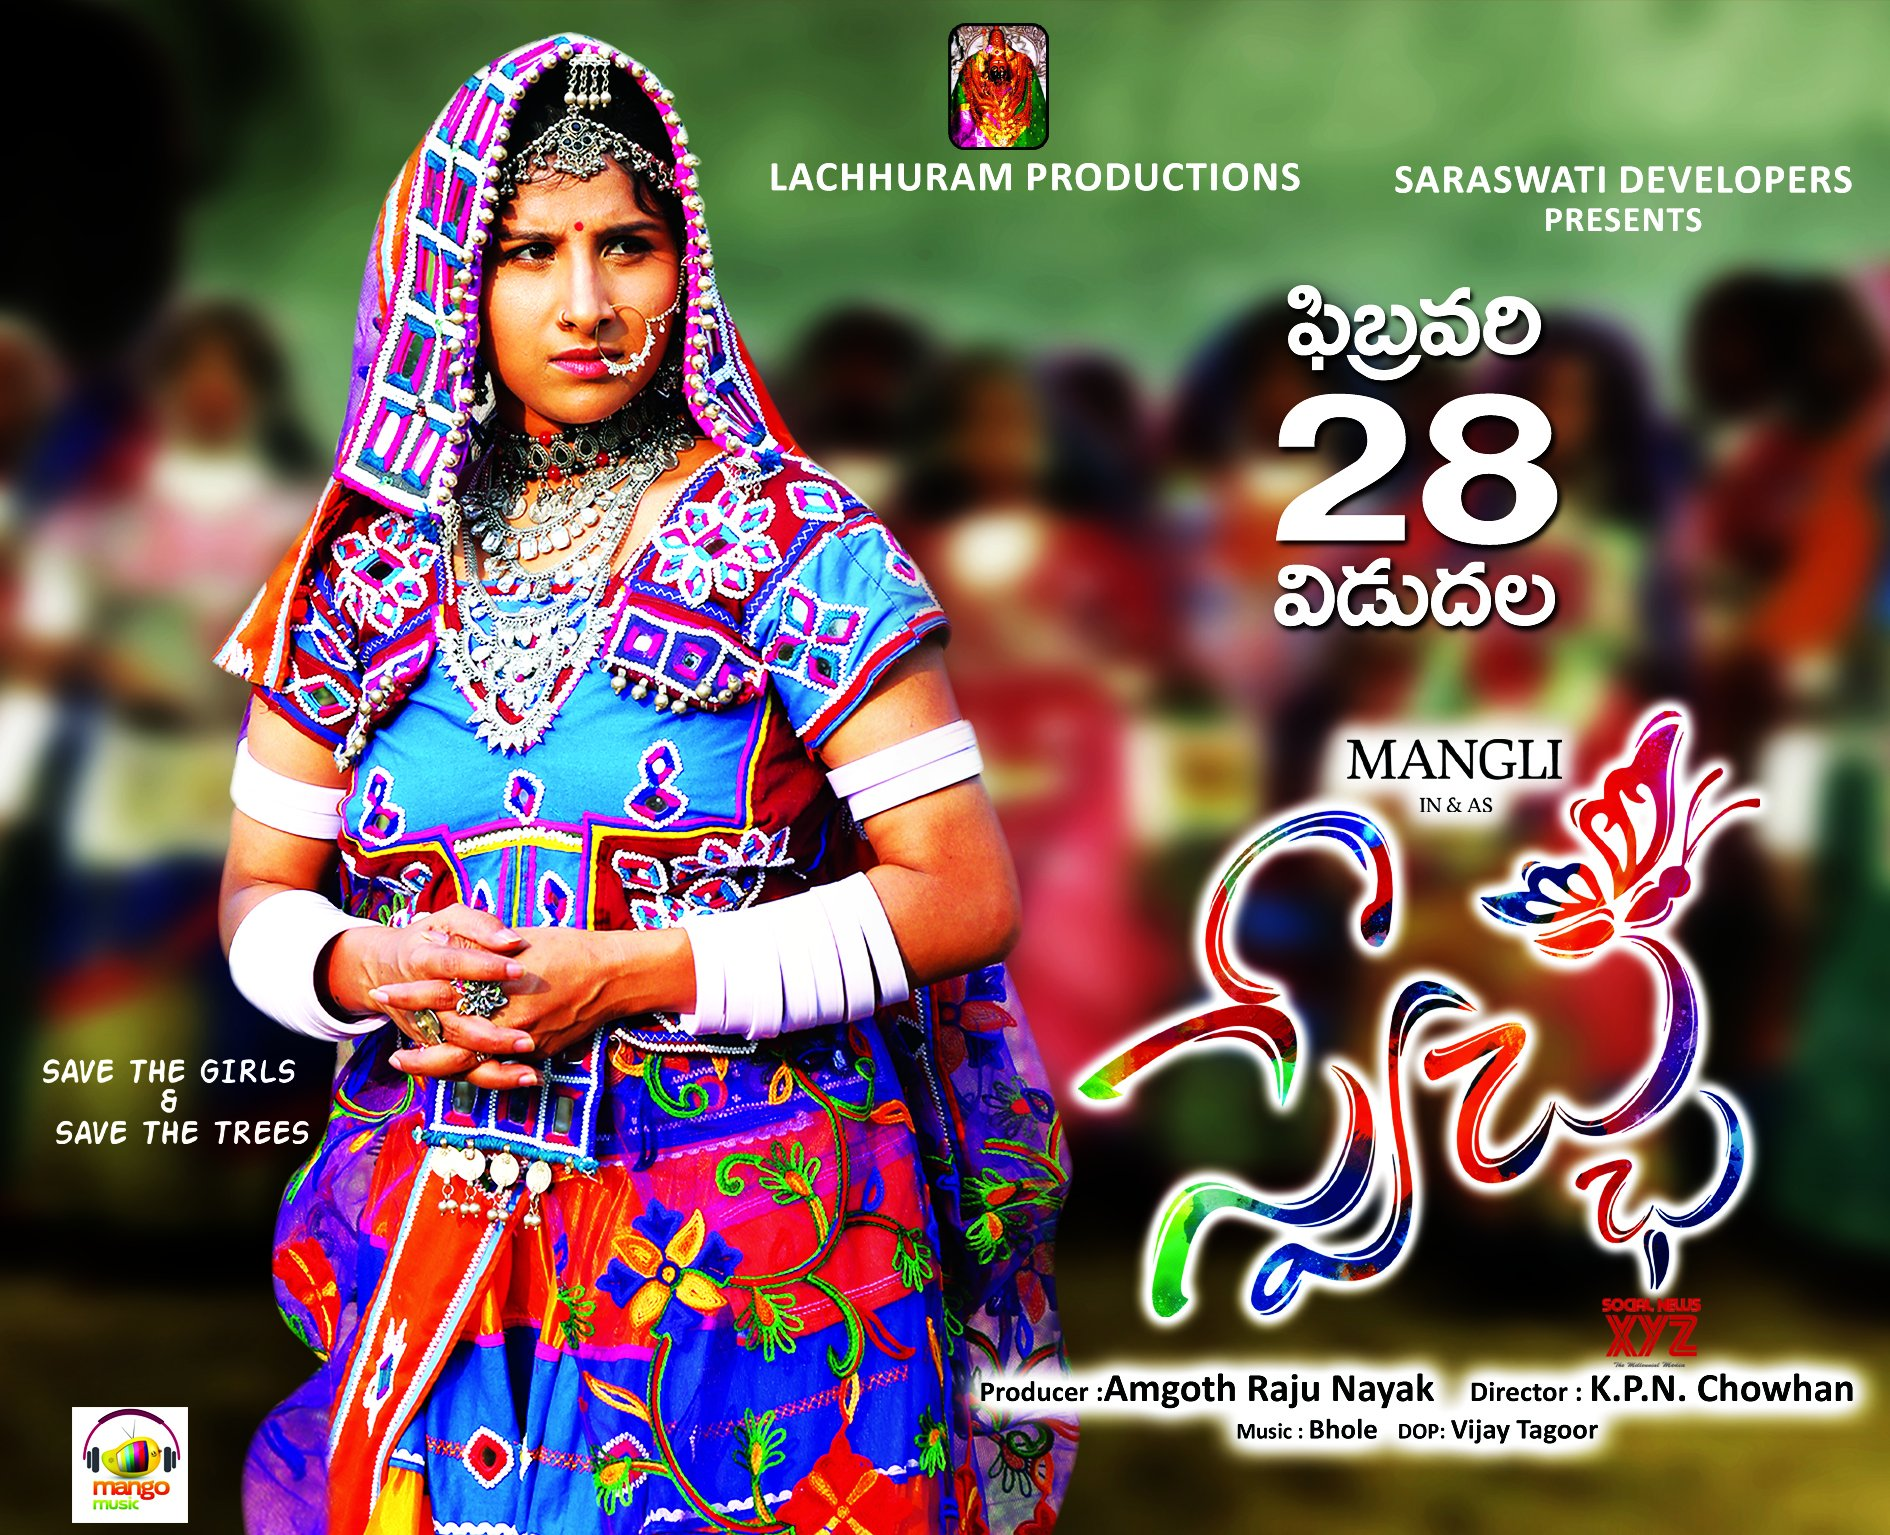 Swetcha Movie To Release On 28th February